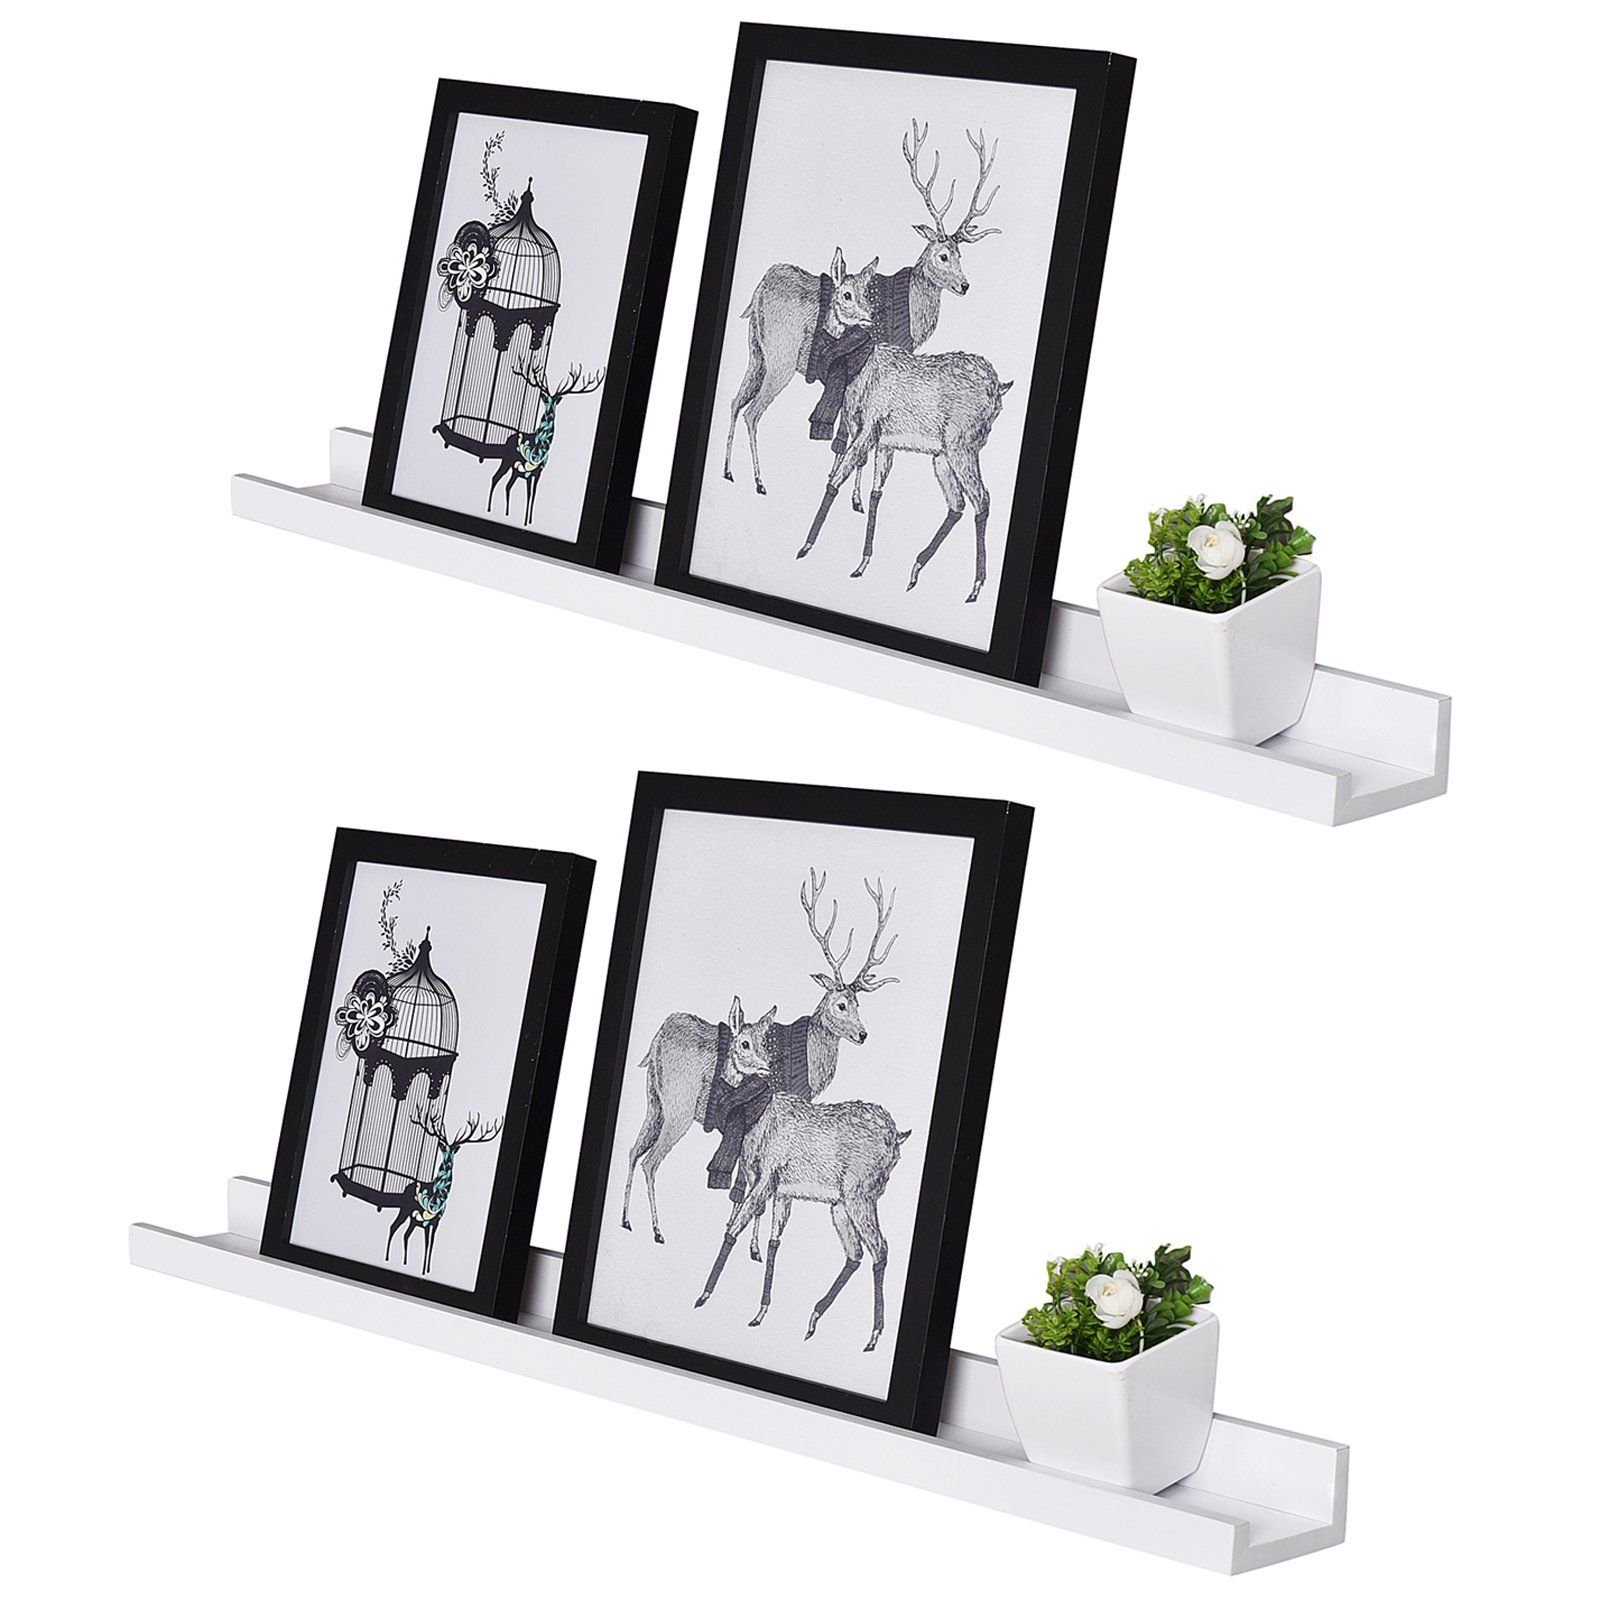 WELLAND Vista Floating Picture Ledge Display Wall Shelf, 48-inch, Set of 2, White